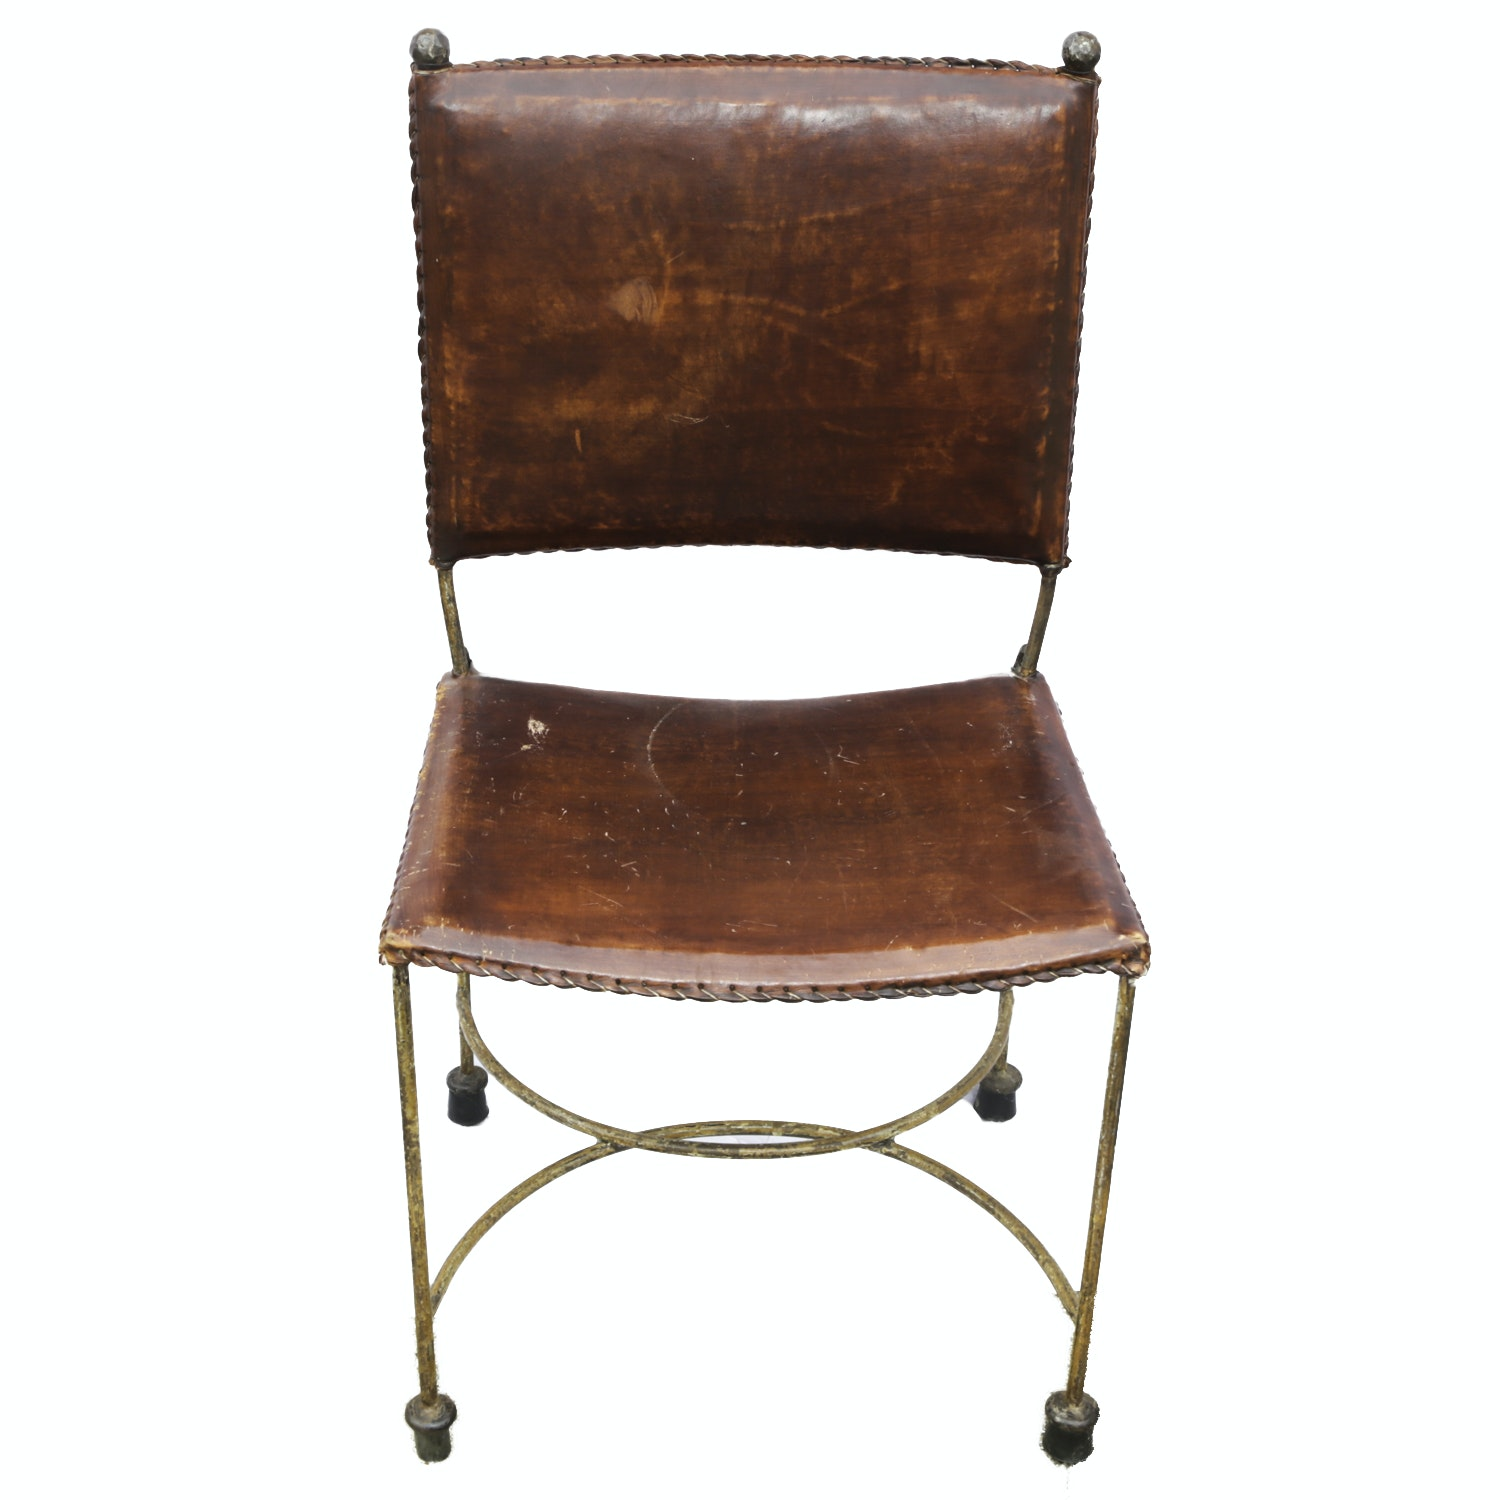 Vintage Italian Wrought Metal and Leather Upholstered Side Chair